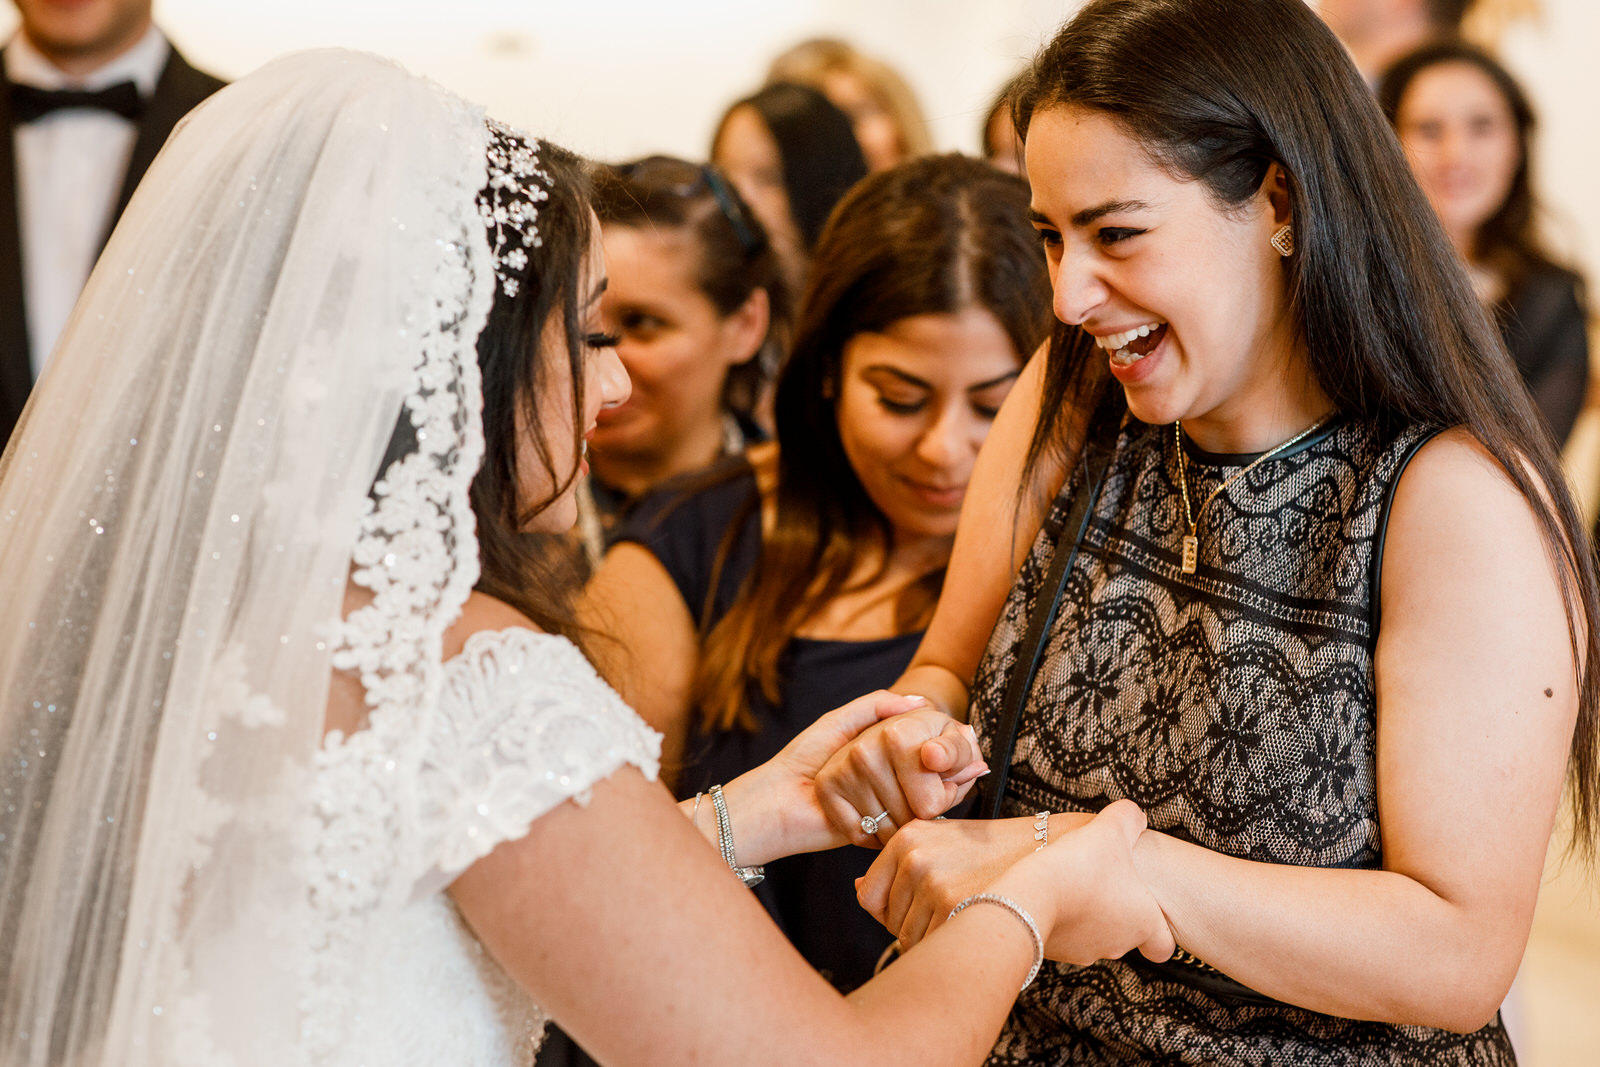 Egyptian bride being congratulated